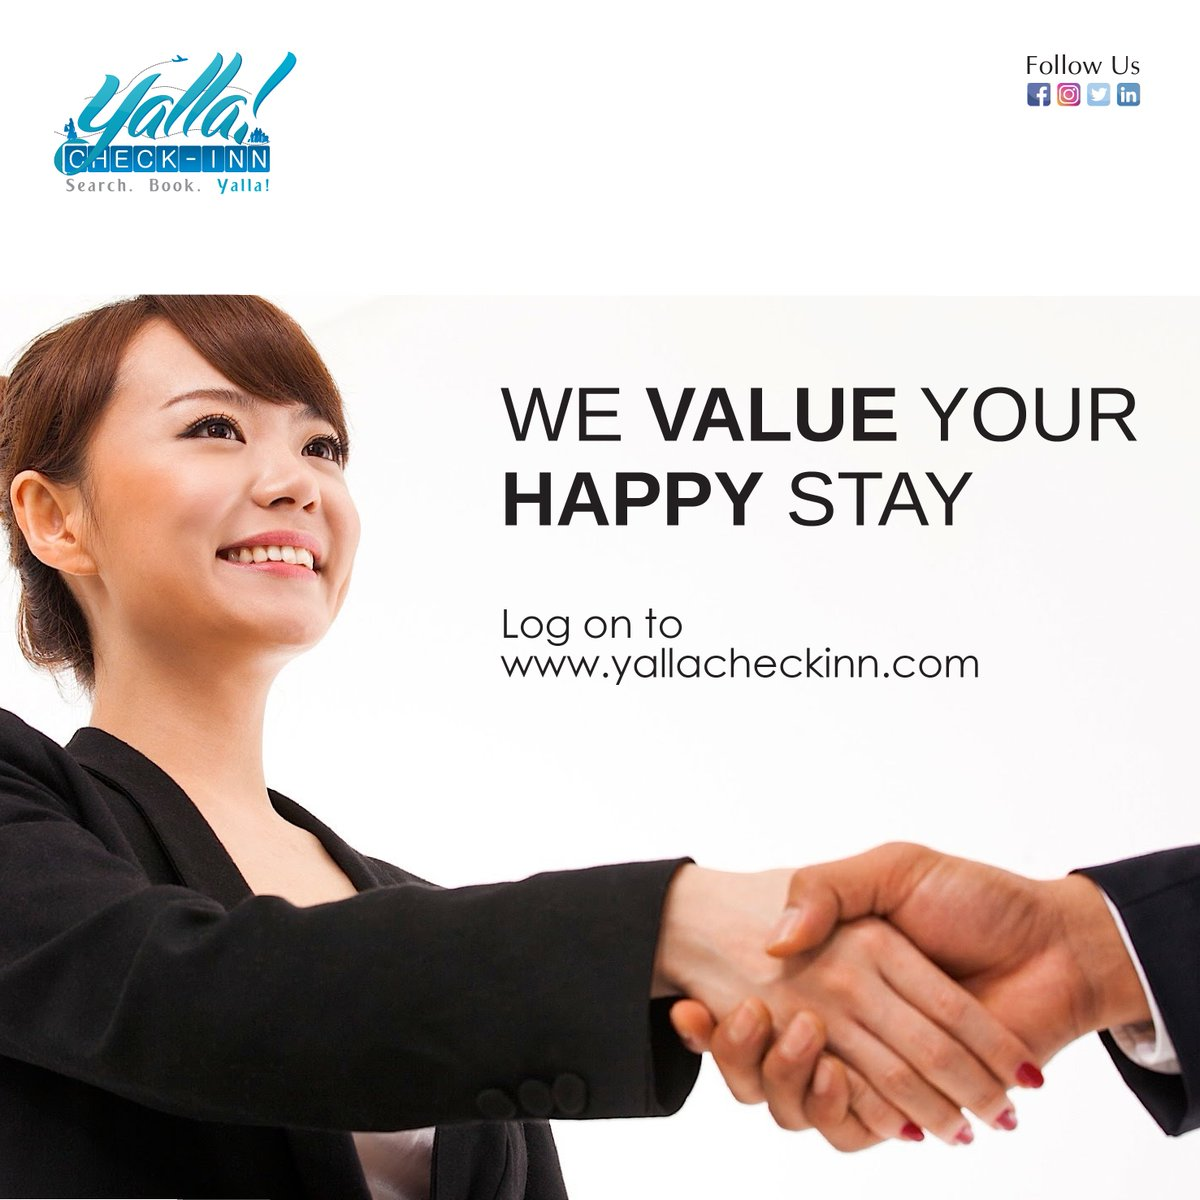 We #Value your #Happy #Stay https://t.co/baScaL4E94 https://t.co/Iv14zIf9sY